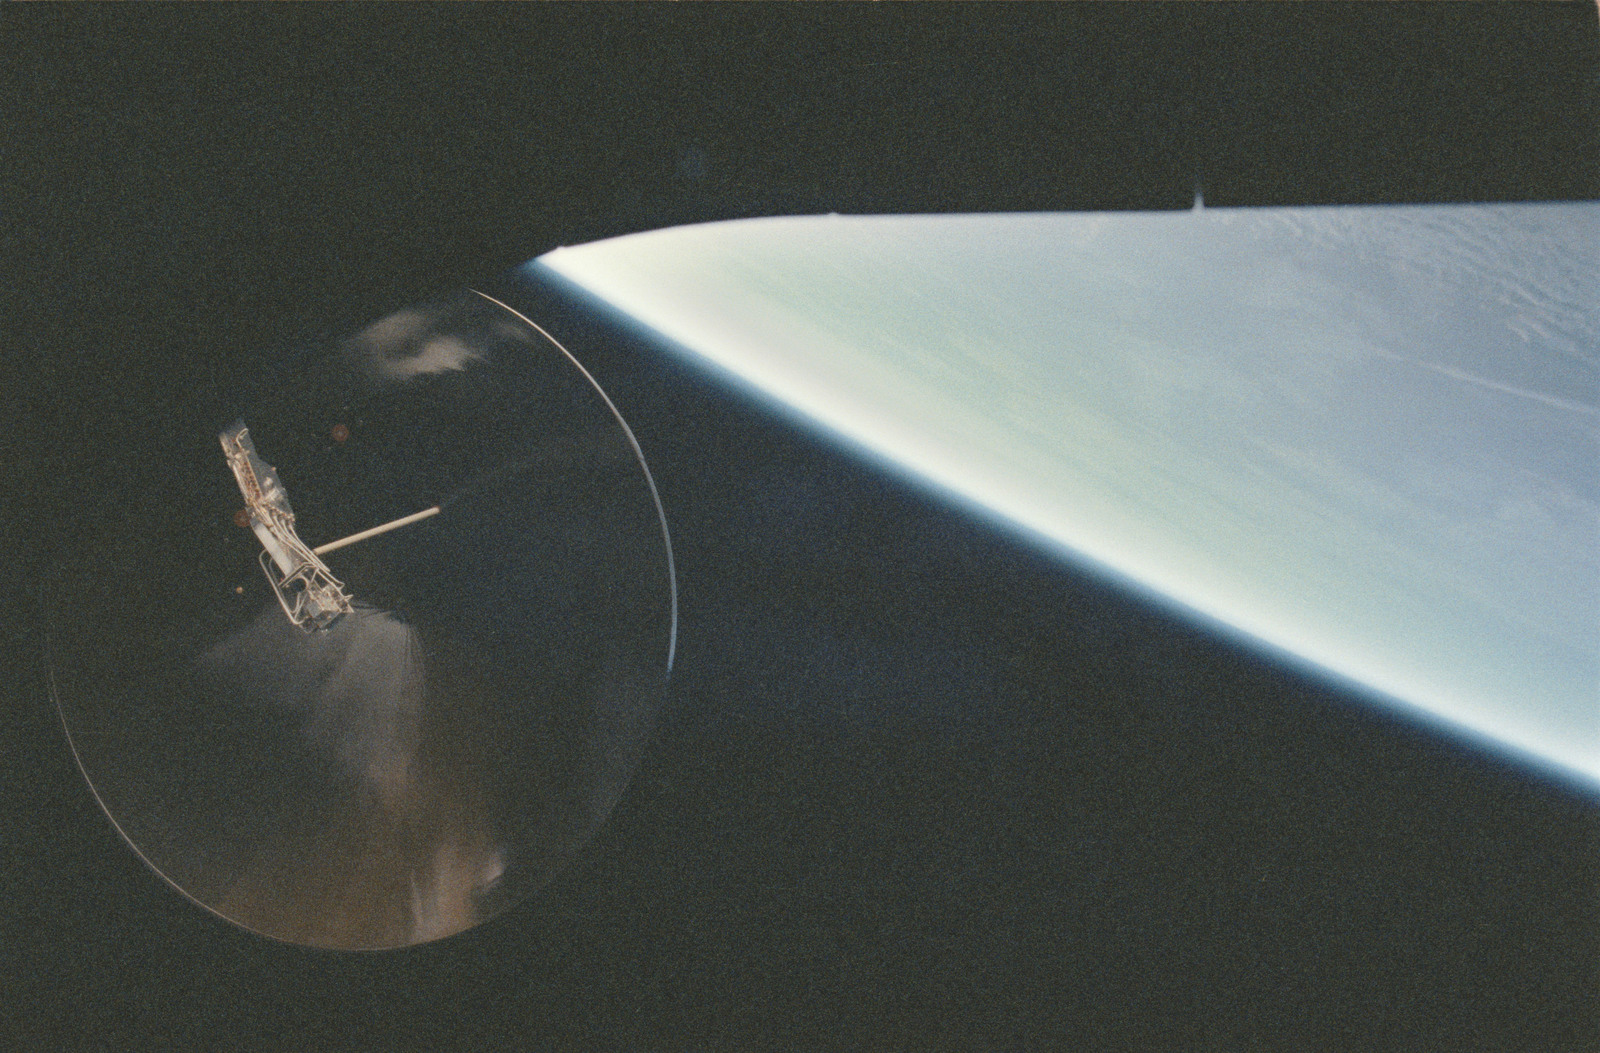 STS053-16-031 - STS-053 - KU antenna with possible auroral activity reflections in the antenna dish